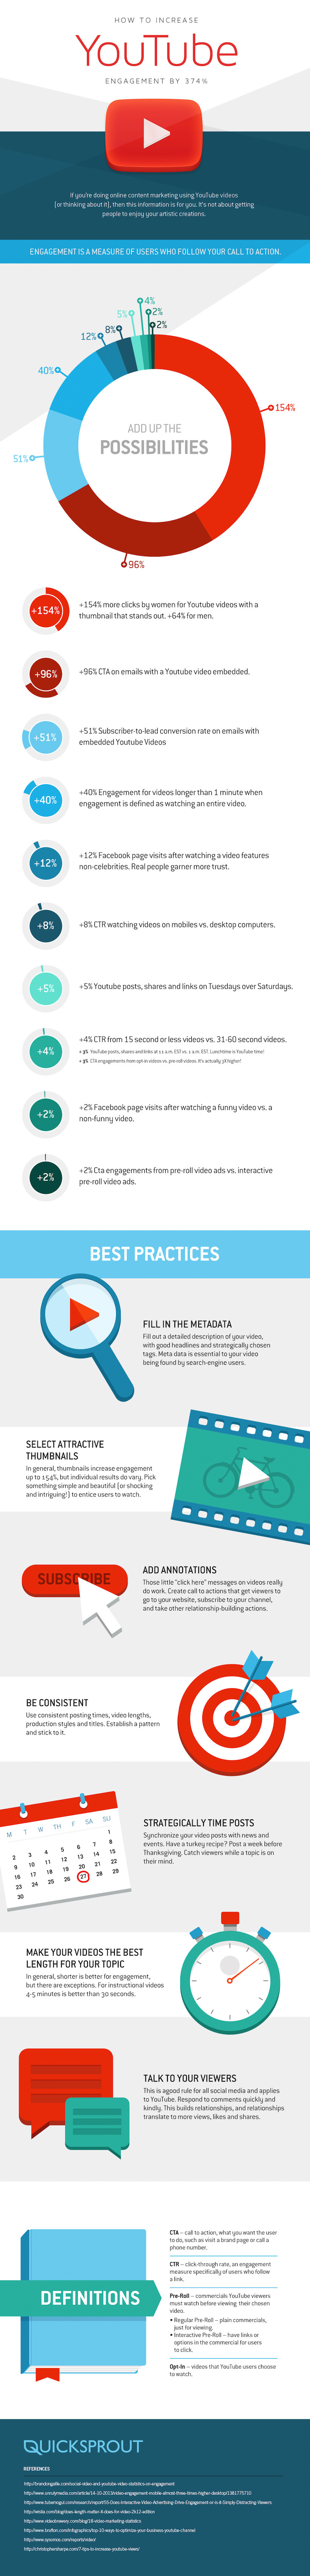 increase-youtube-engagement-infographic (1)